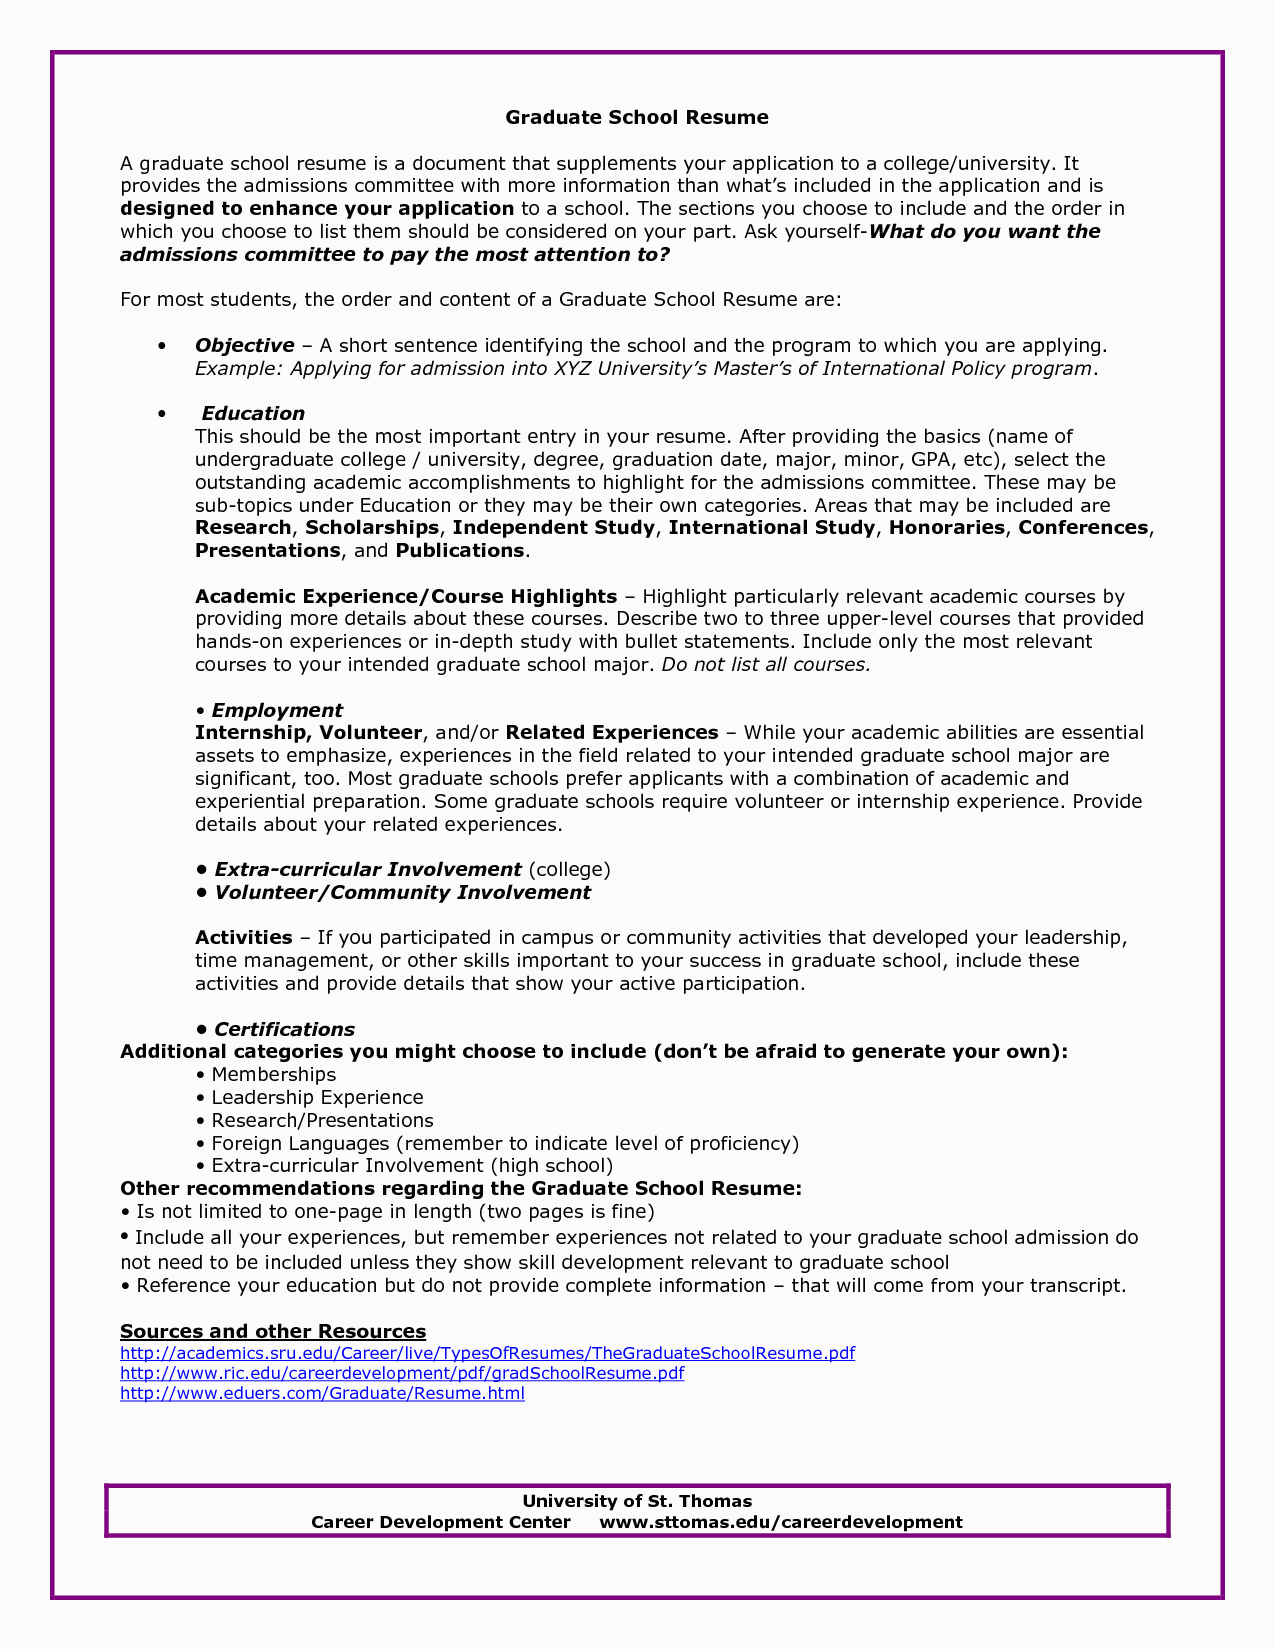 Sample Resume for Admission to Graduate School Graduate School Admissions Resume Sample